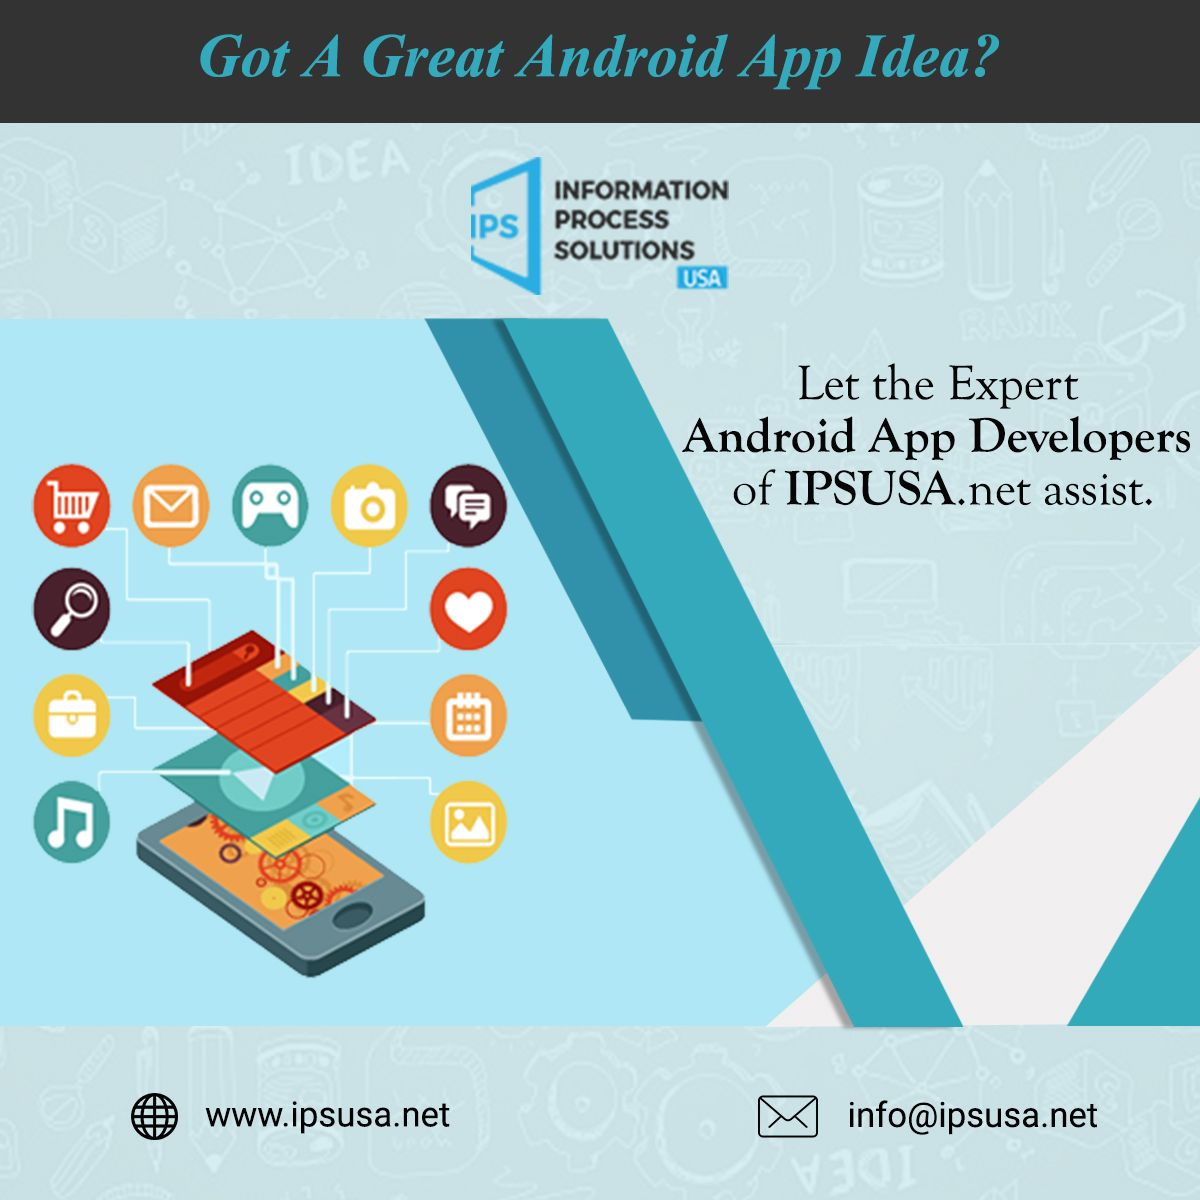 Hire Expert Android App Development Team that can